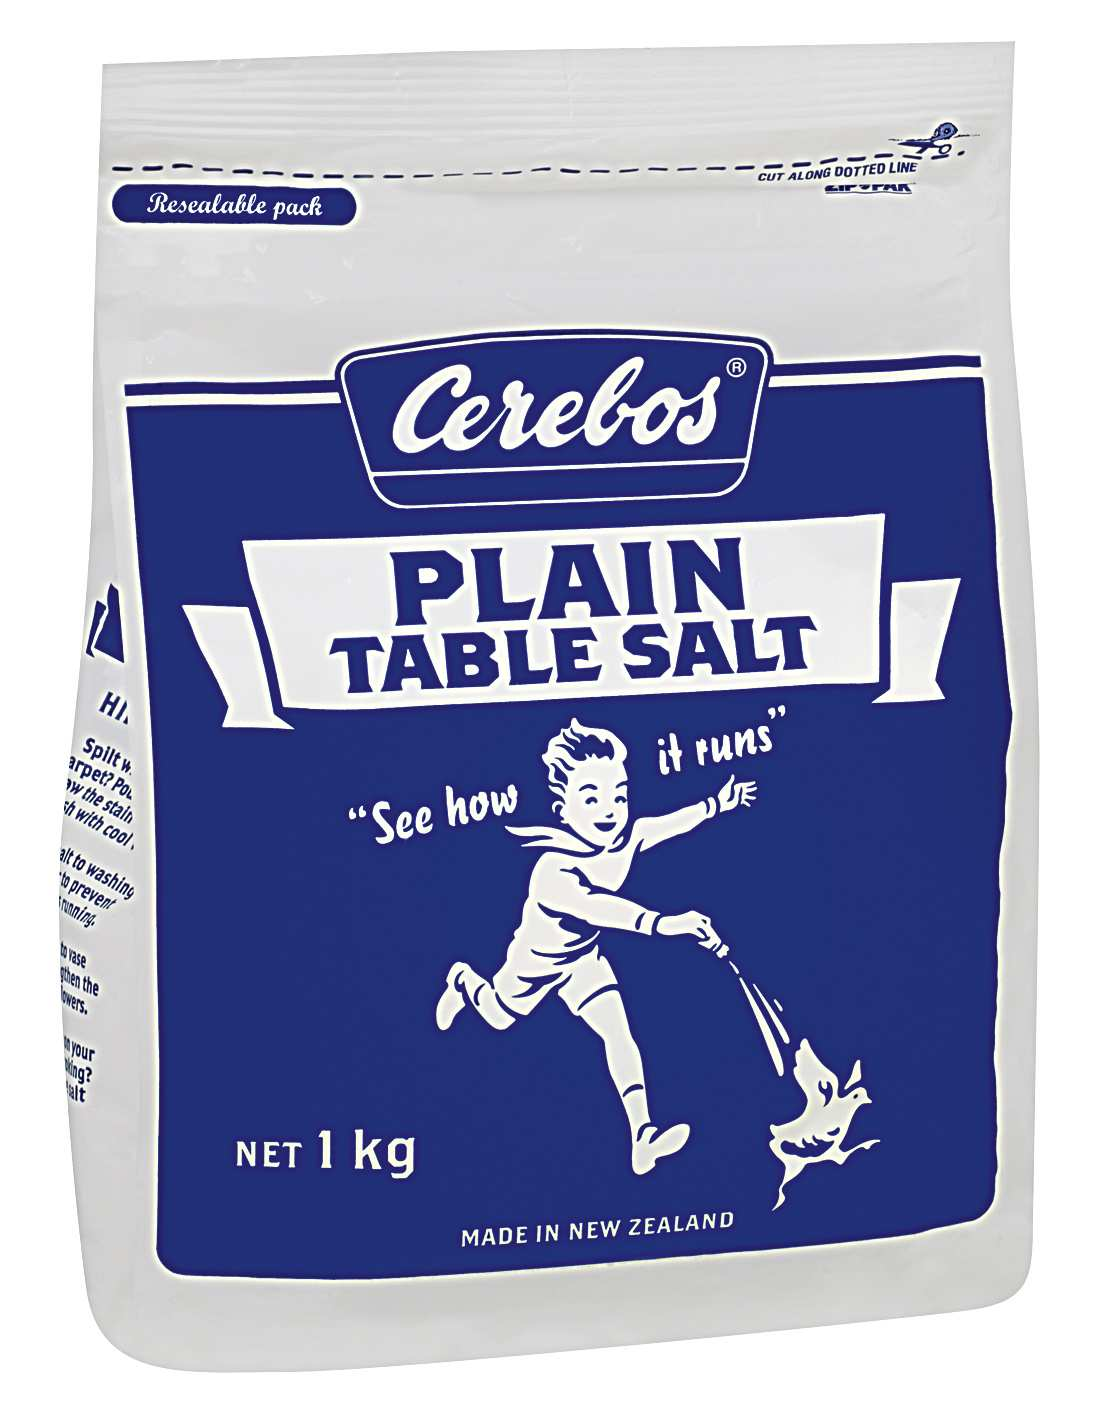 1kg Cerebos Plain Table Salt